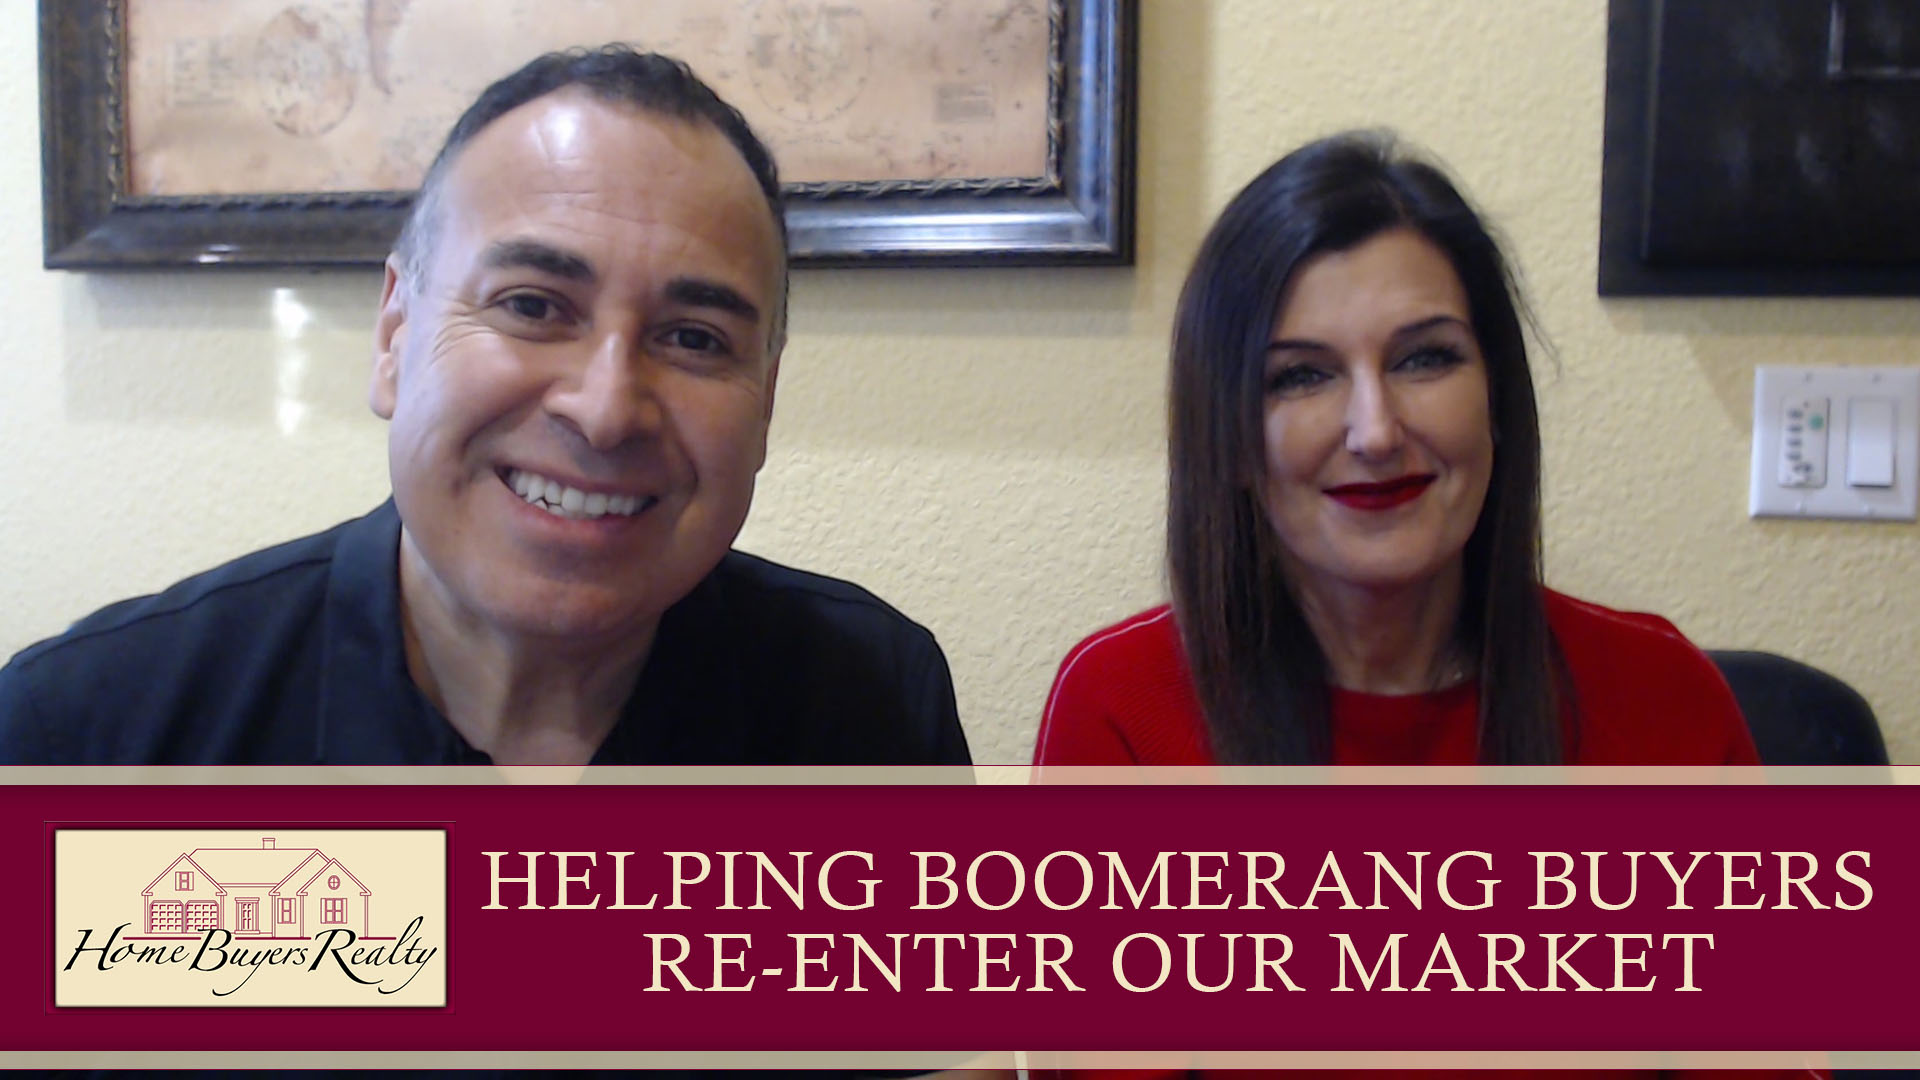 What Do Boomerang Buyers Need to Know About Our Market?